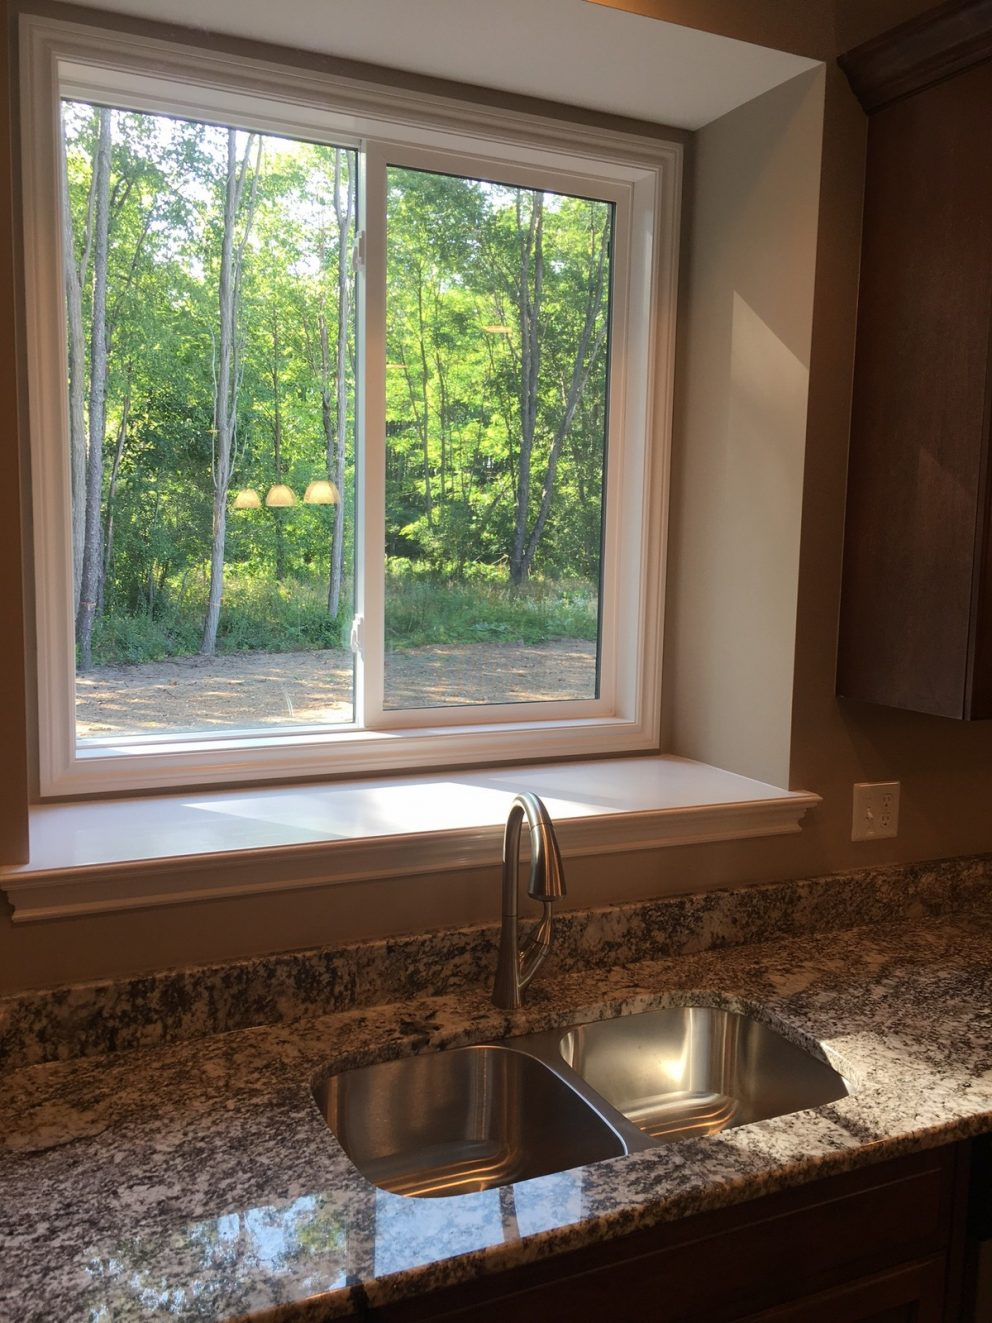 Stainless steel kitchen sink in granite counter top with bay window